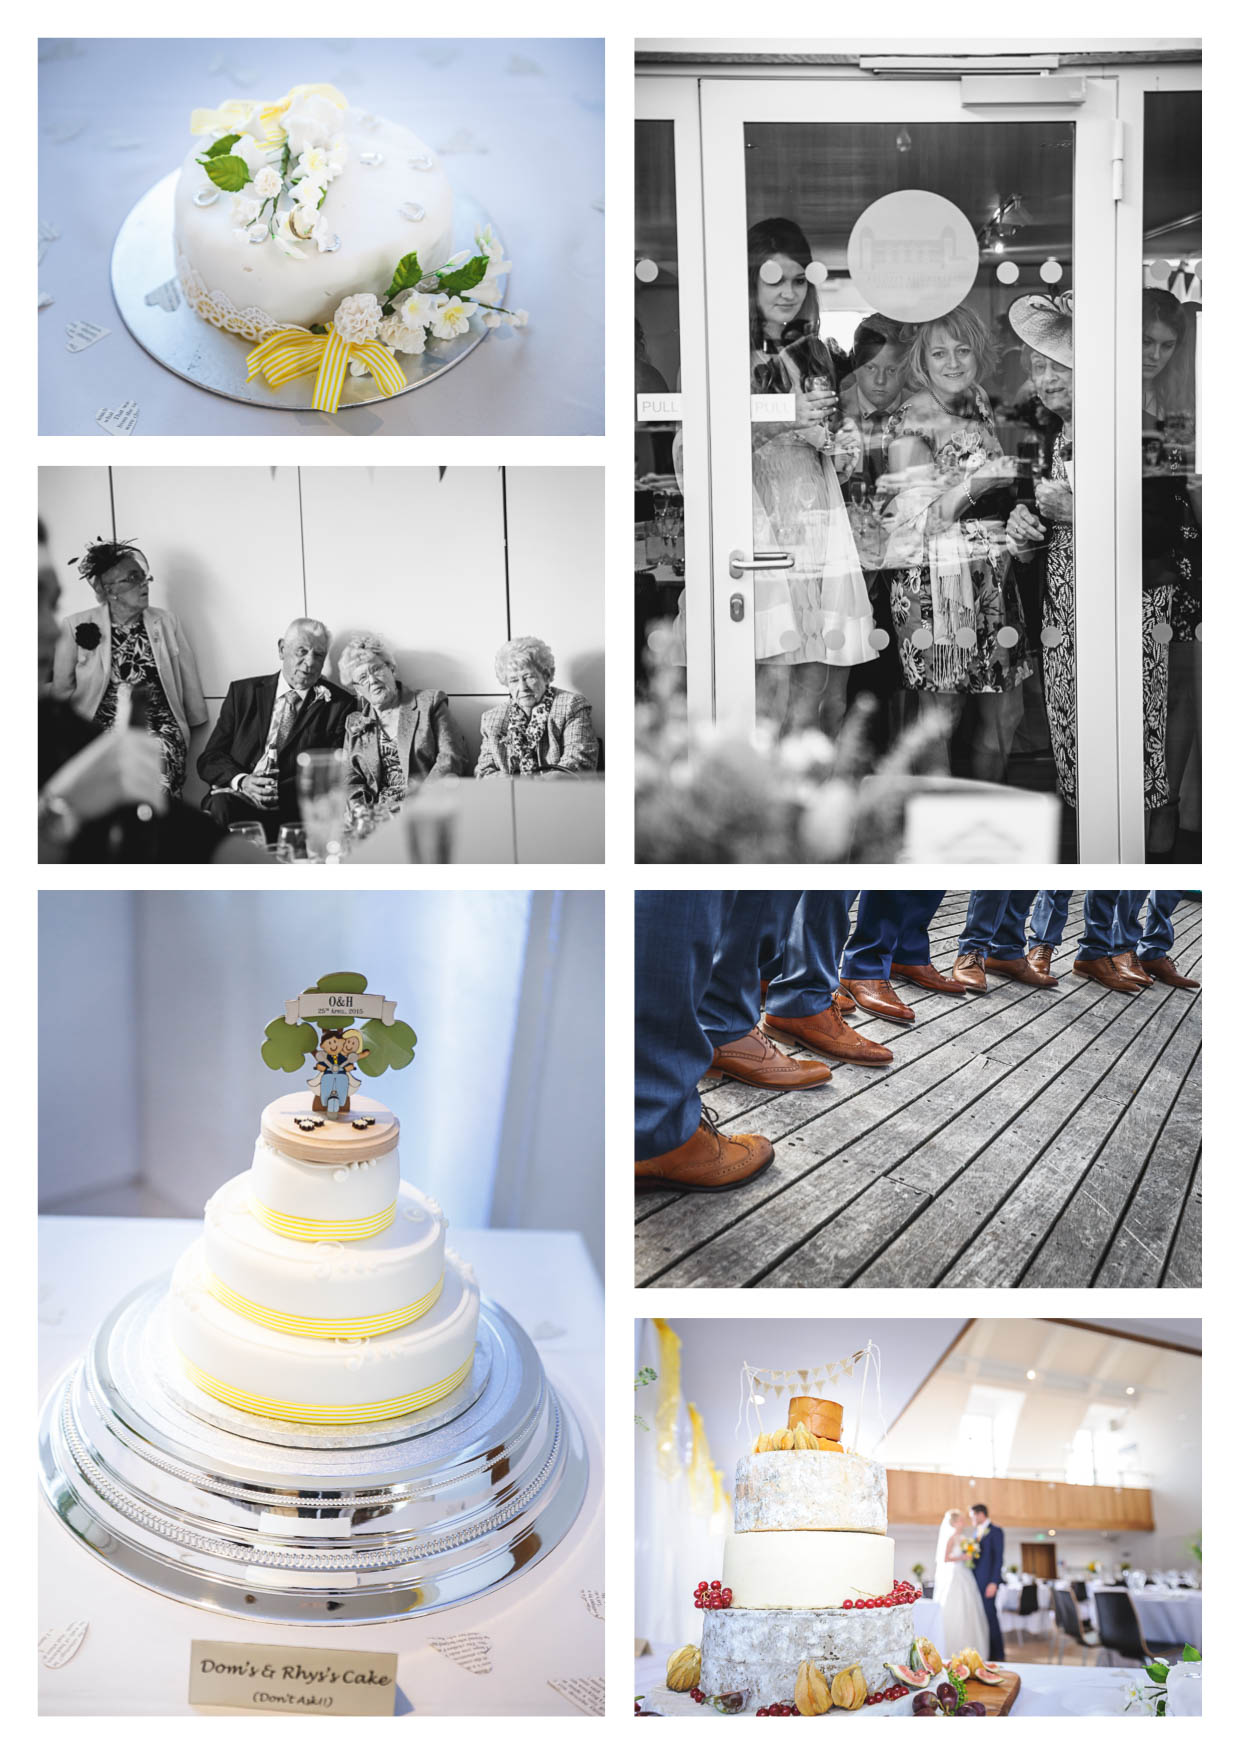 Photos by Cardiff Wedding Photographers Penarth Pier Pavilion